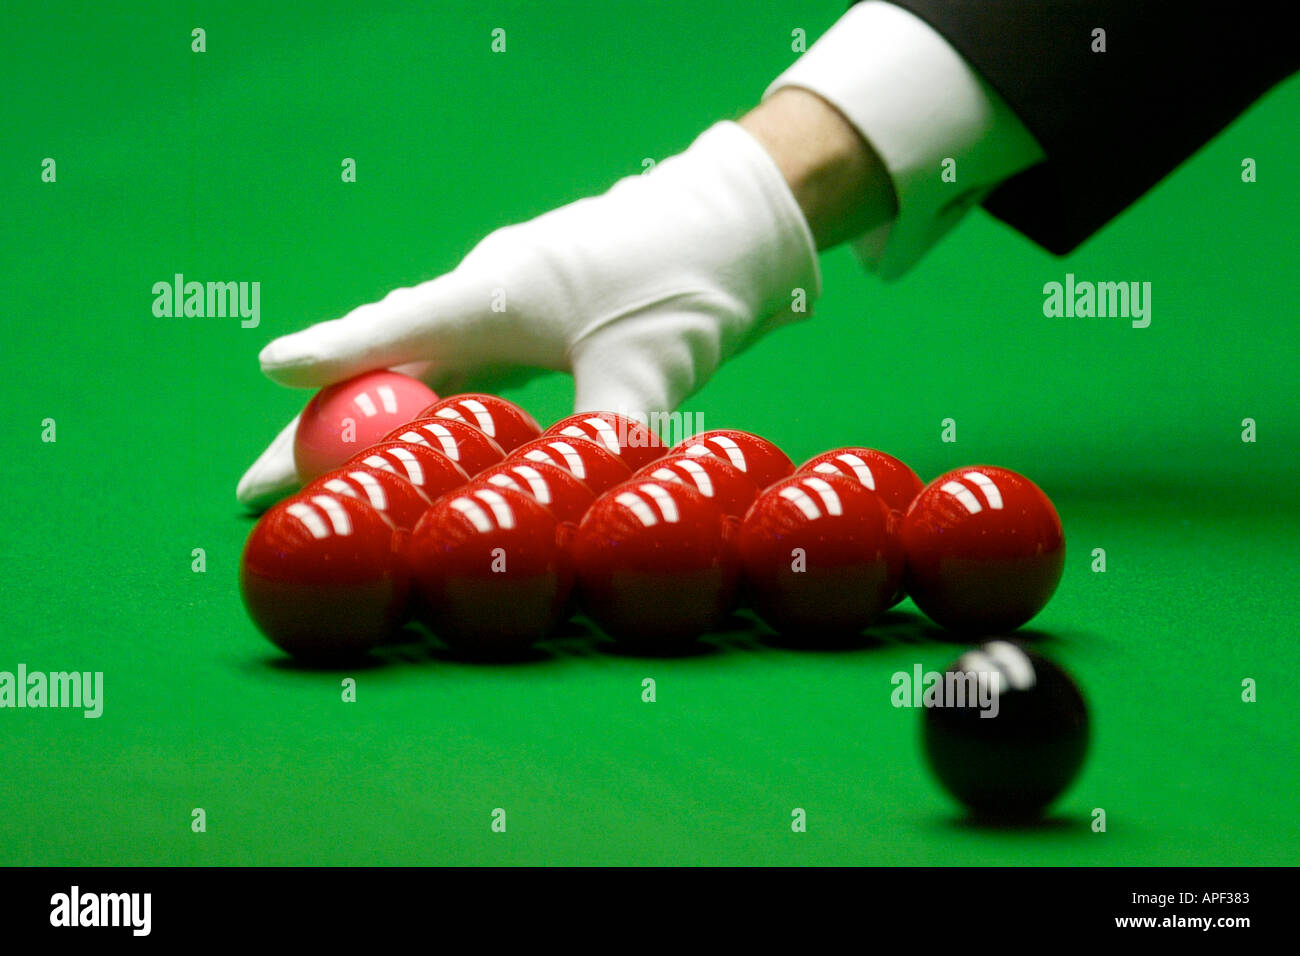 Snooker referees gloved hand positions pink ball in front of the red pack - Stock Image